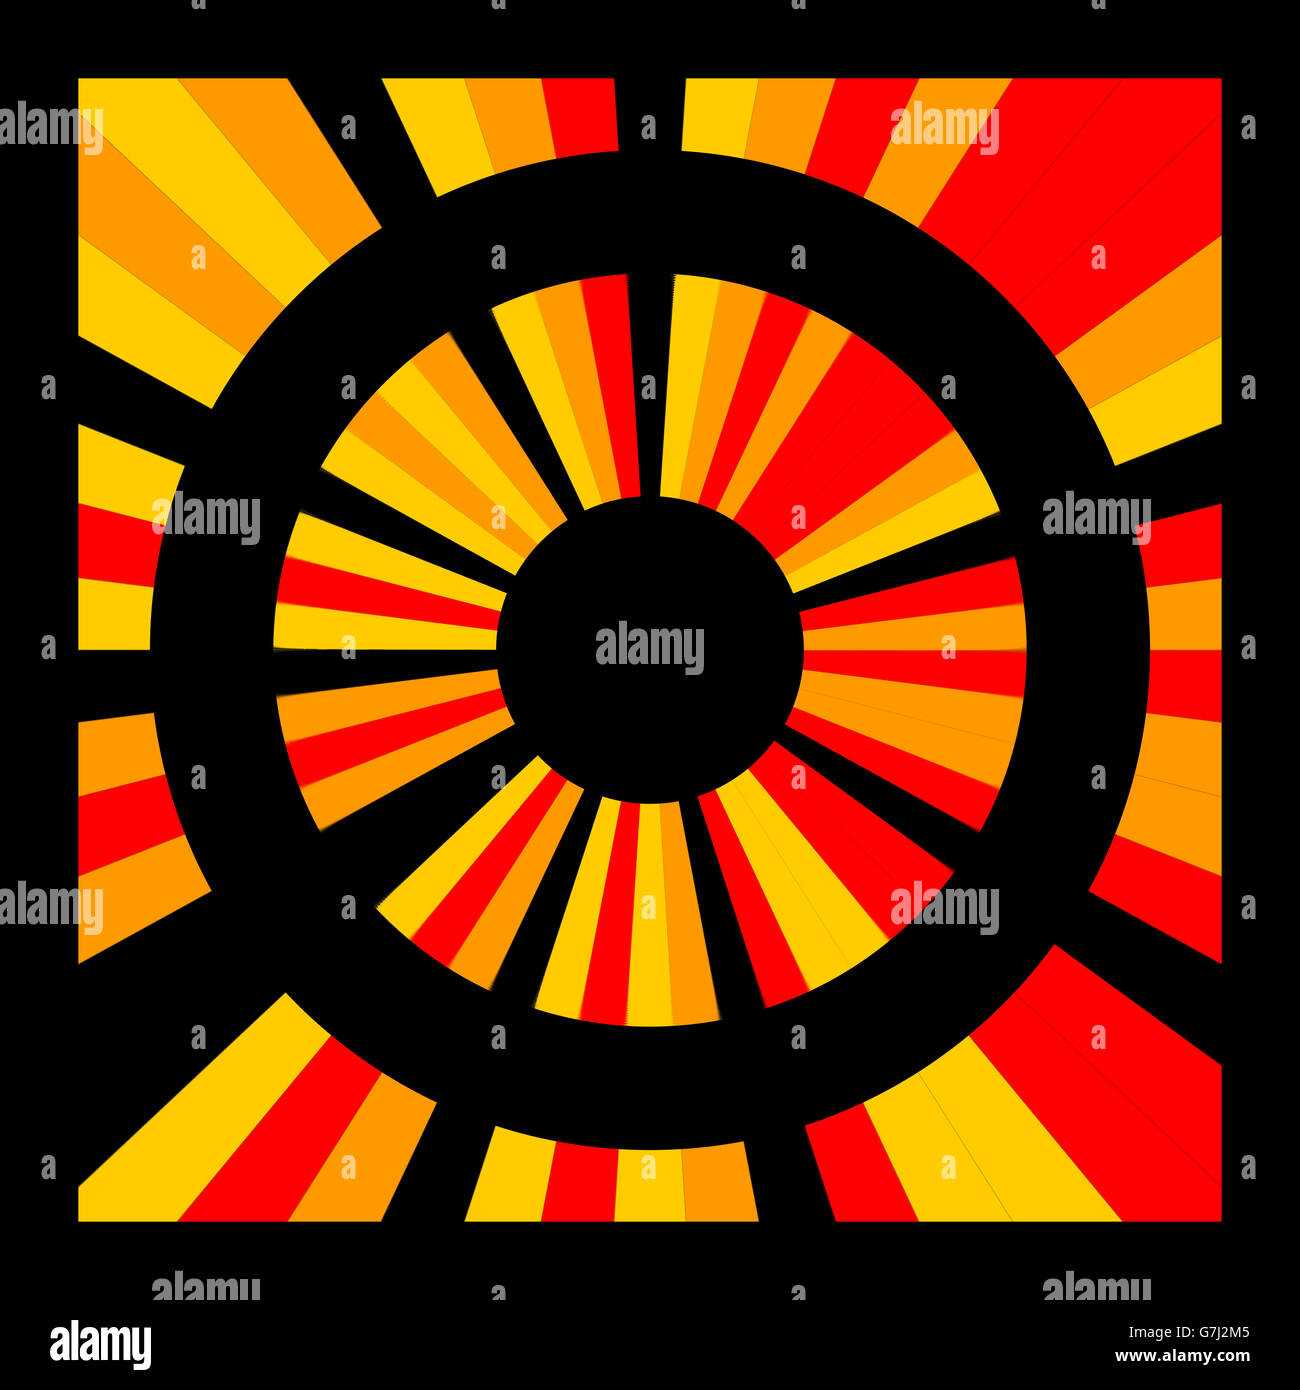 Target. Geometric digital art in strong saturated red orange and black colors. - Stock Image